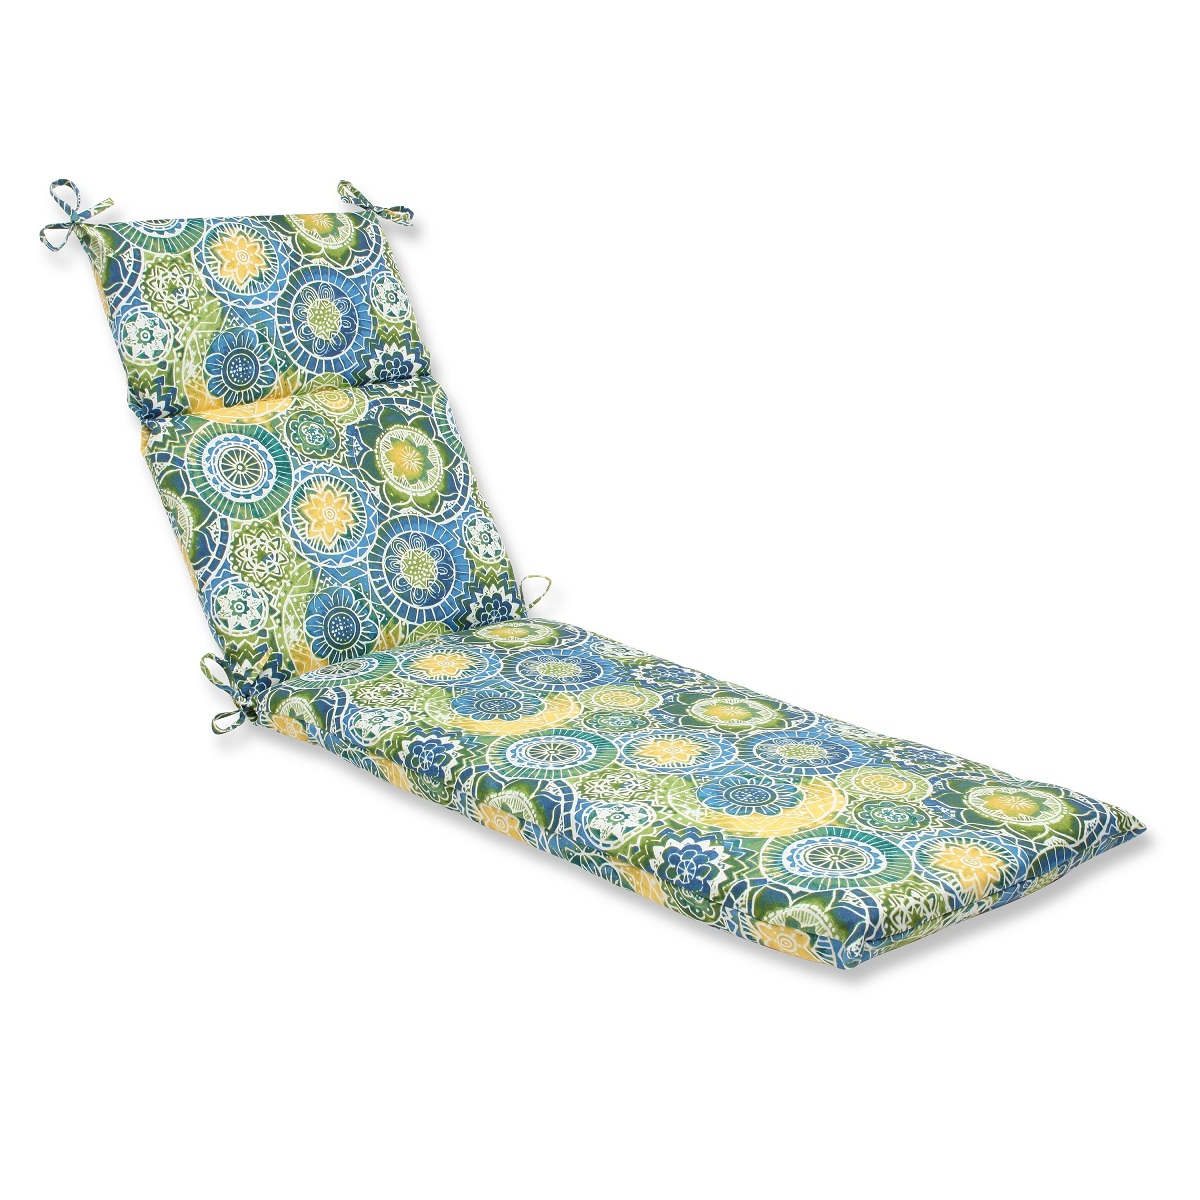 "72.5"" Laguna Mosaico Blue, Green and Yellow Outdoor Patio ..."